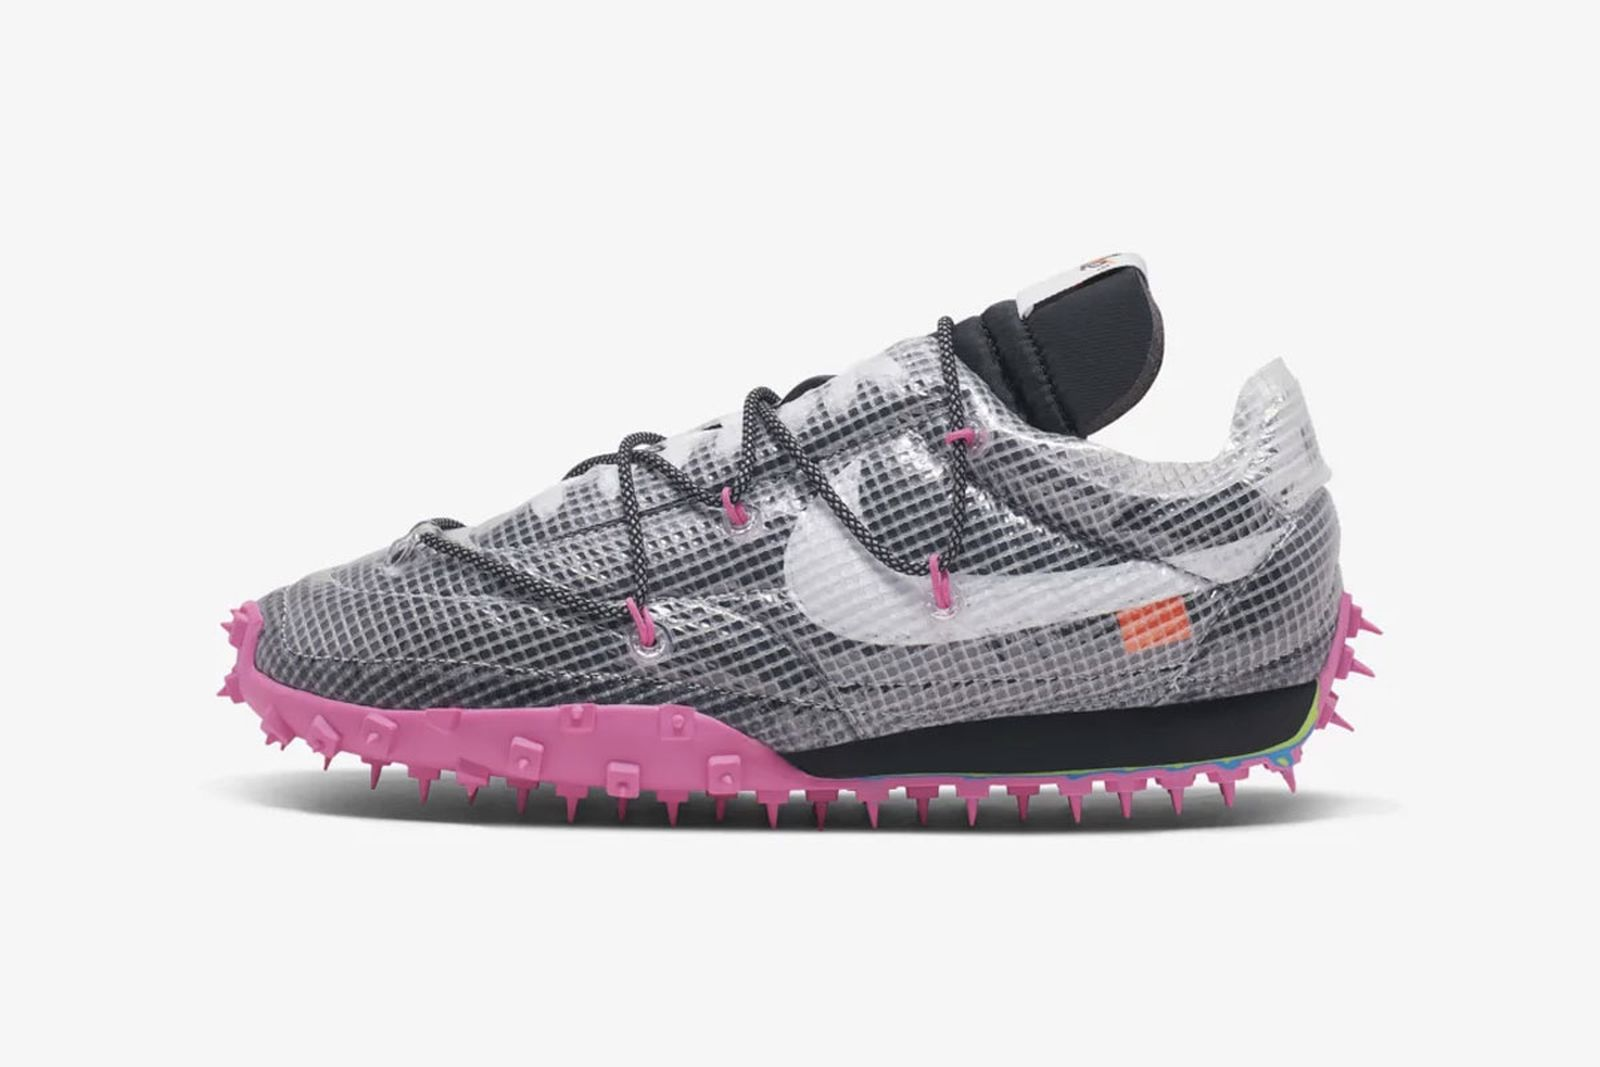 off-white-nike-waffle-racer-sp-release-date-price-05